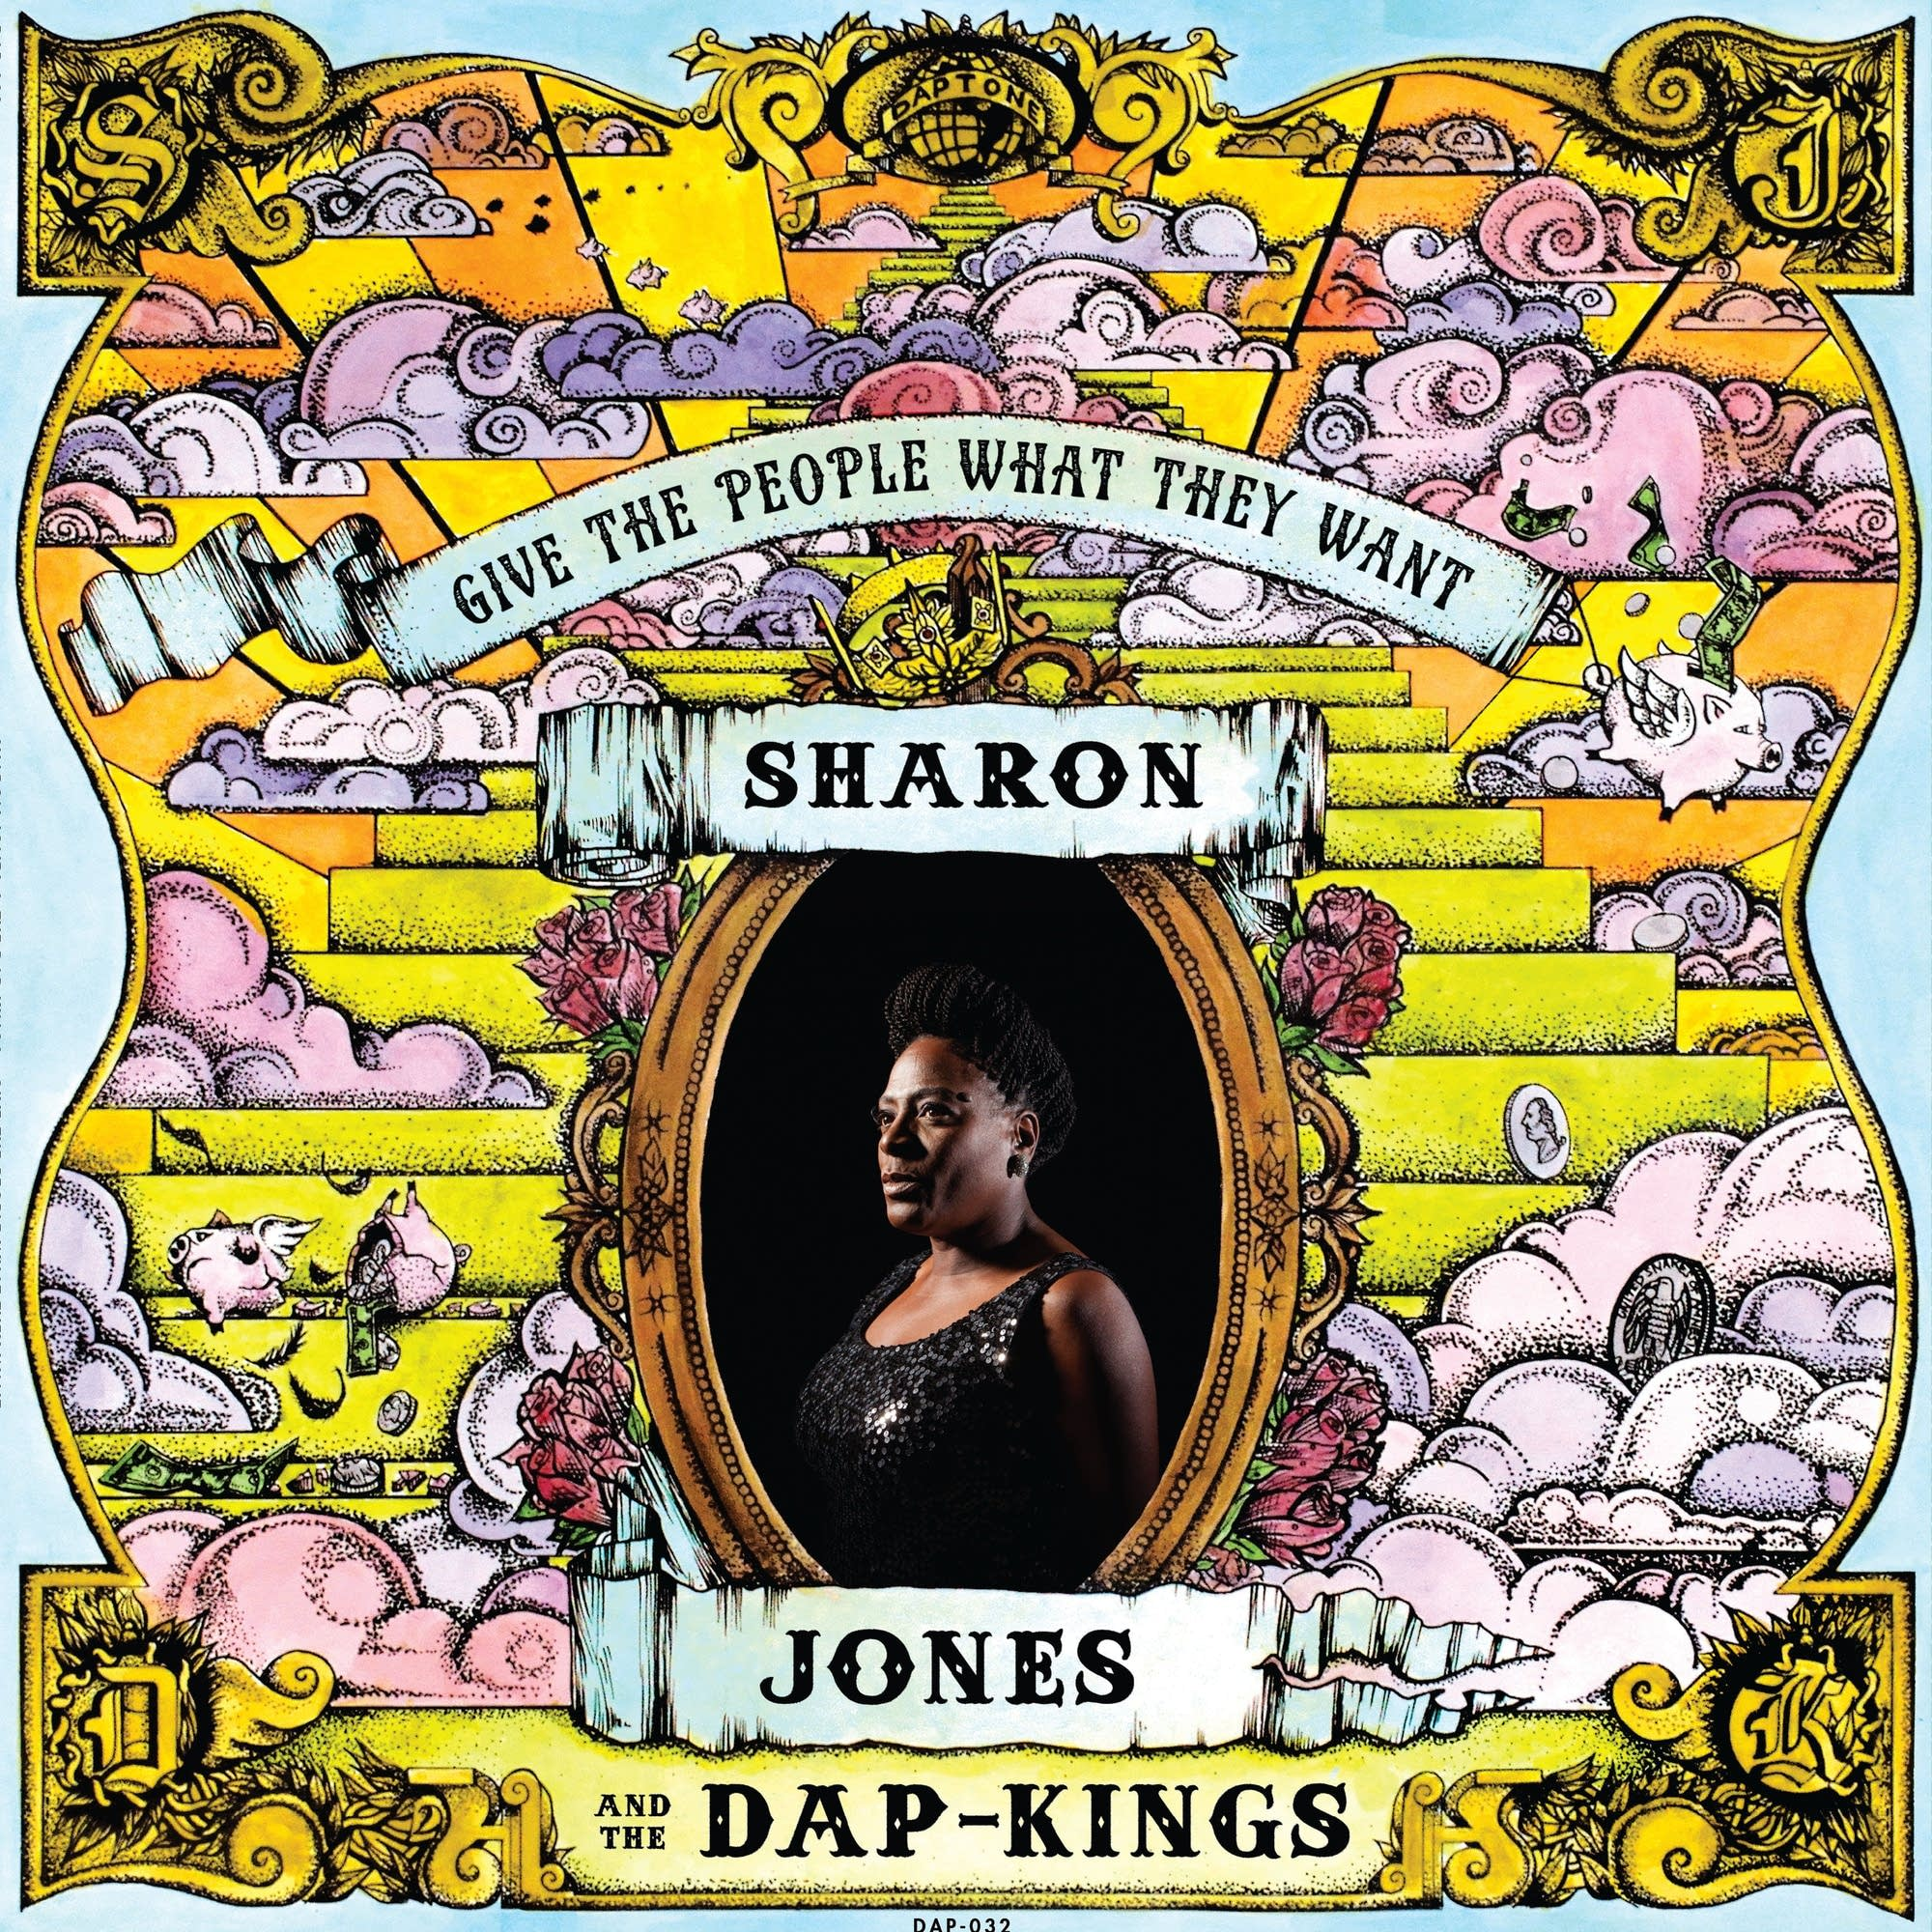 sharon jones dap-kings give people what they want